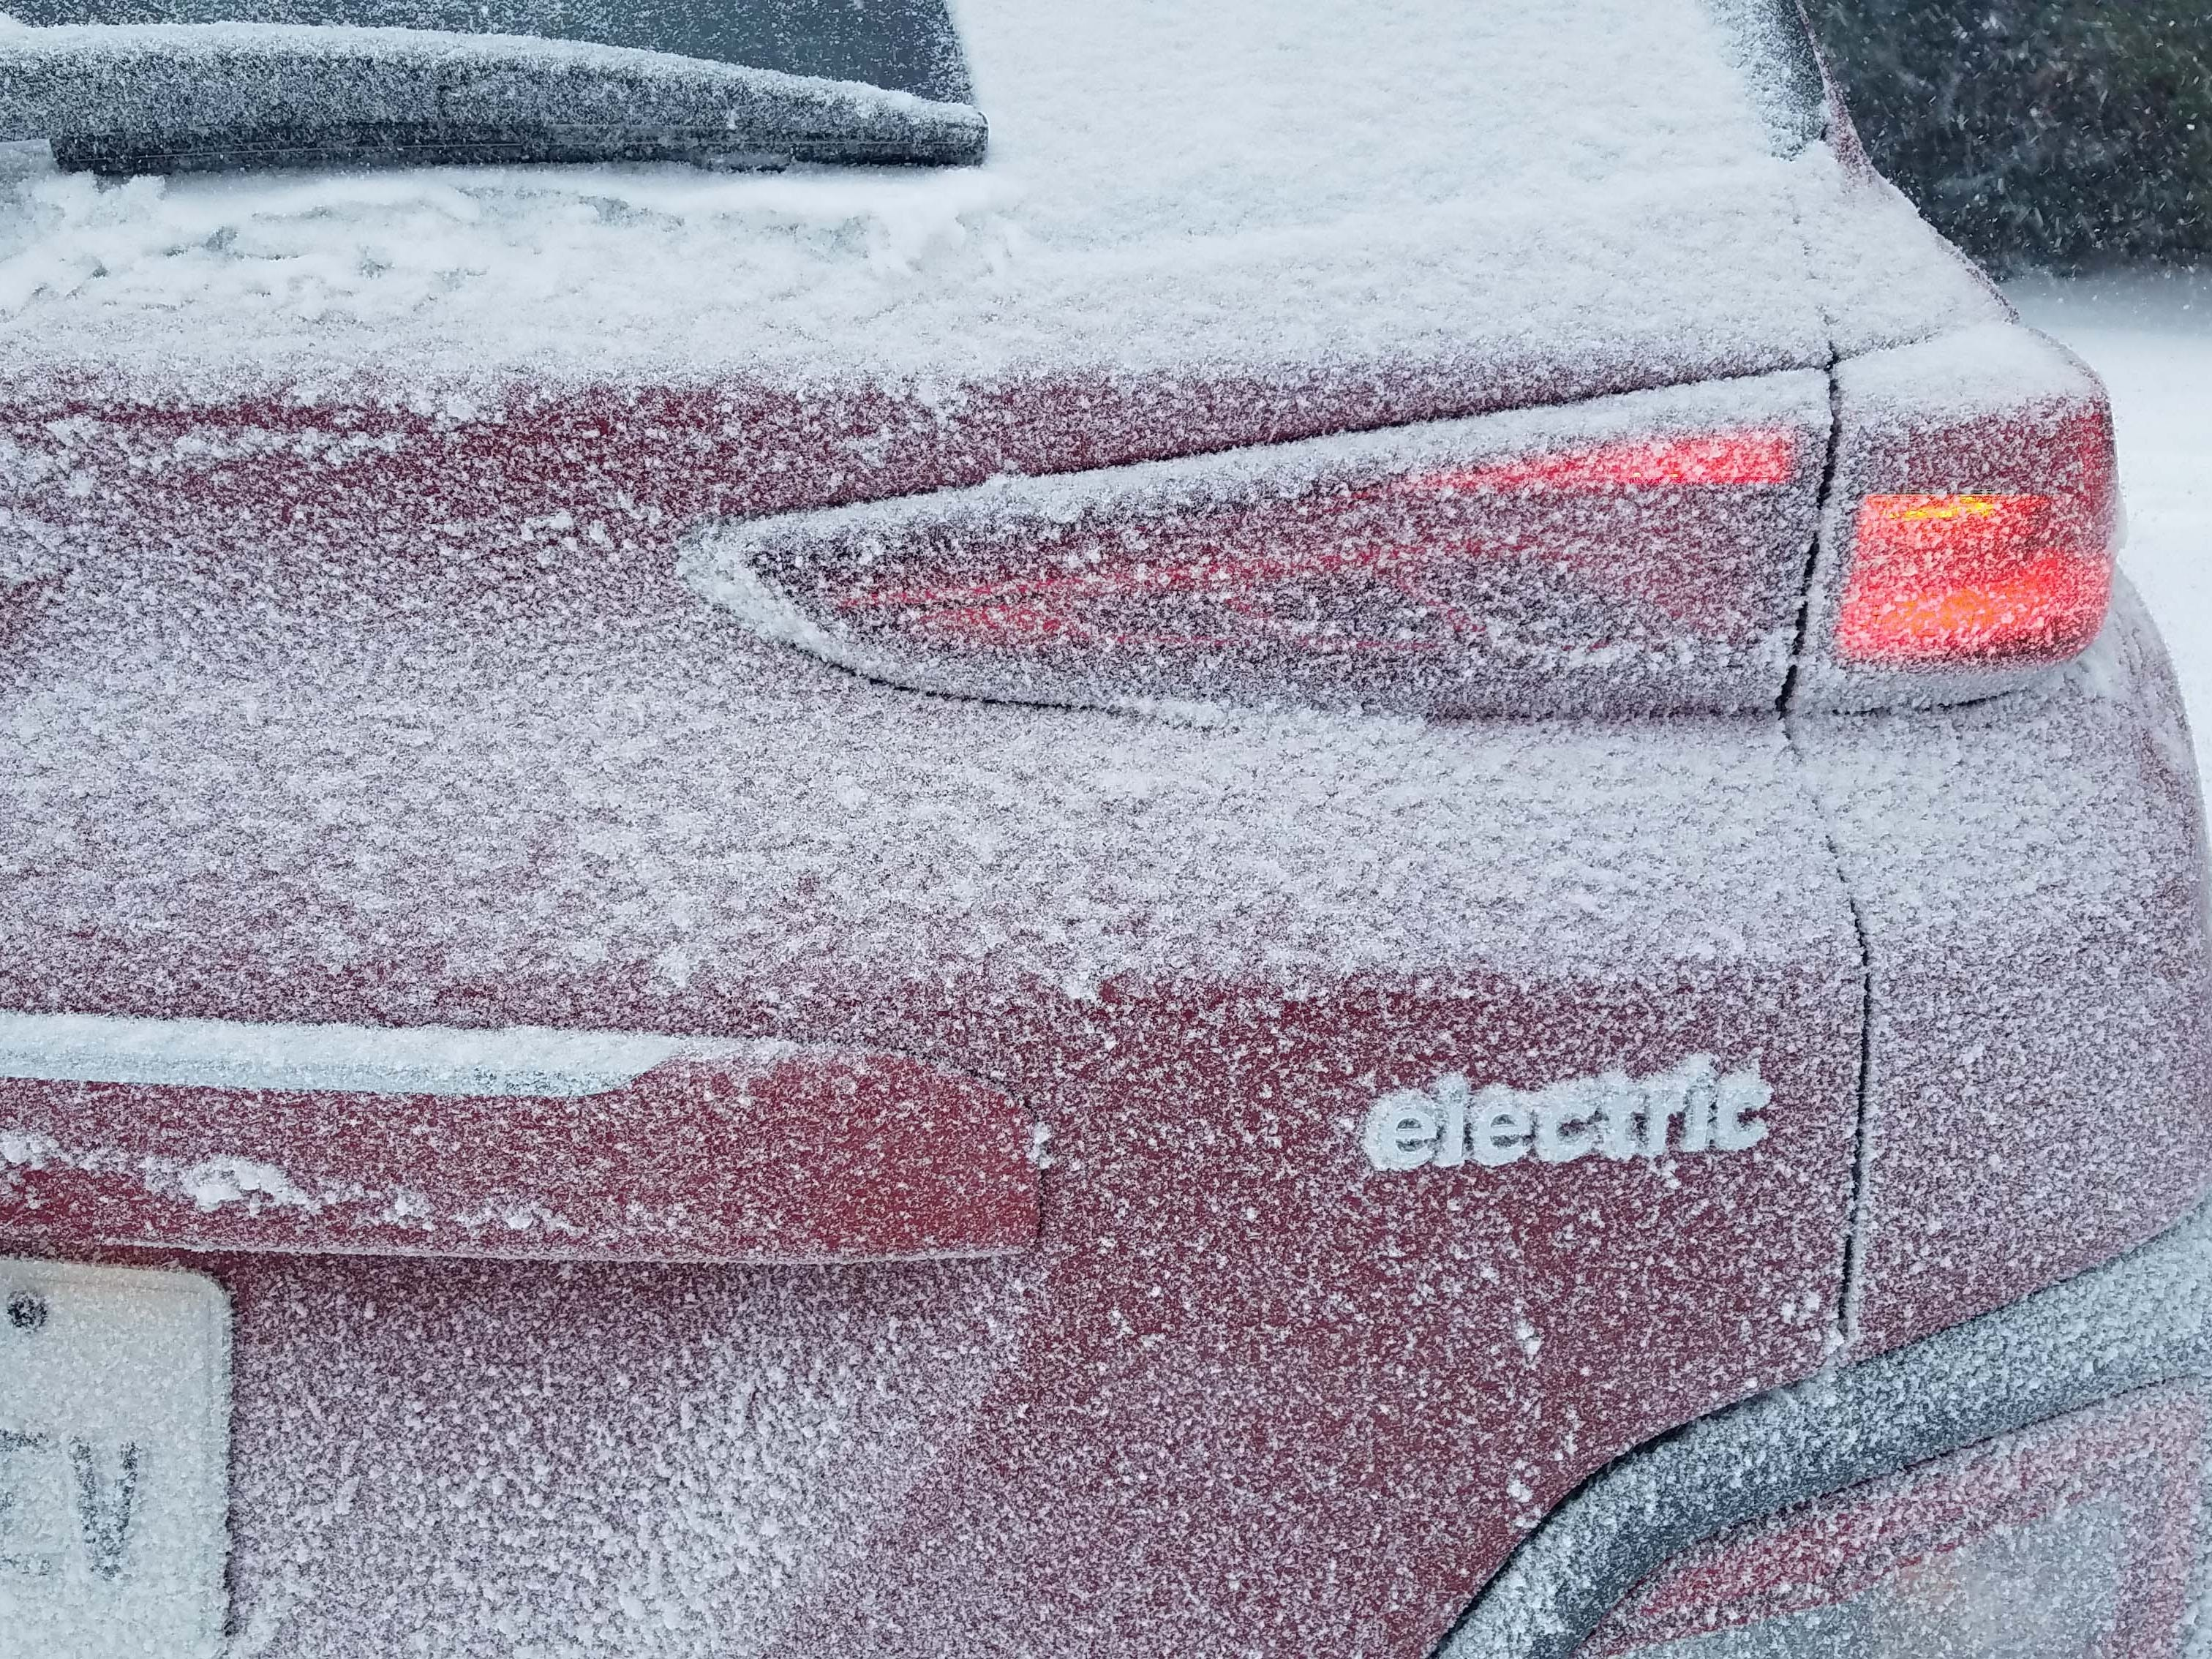 We're a long way from Hawaii, Toto. The 2019 Hyundai Kona EV gets its best electric range in warm climates.